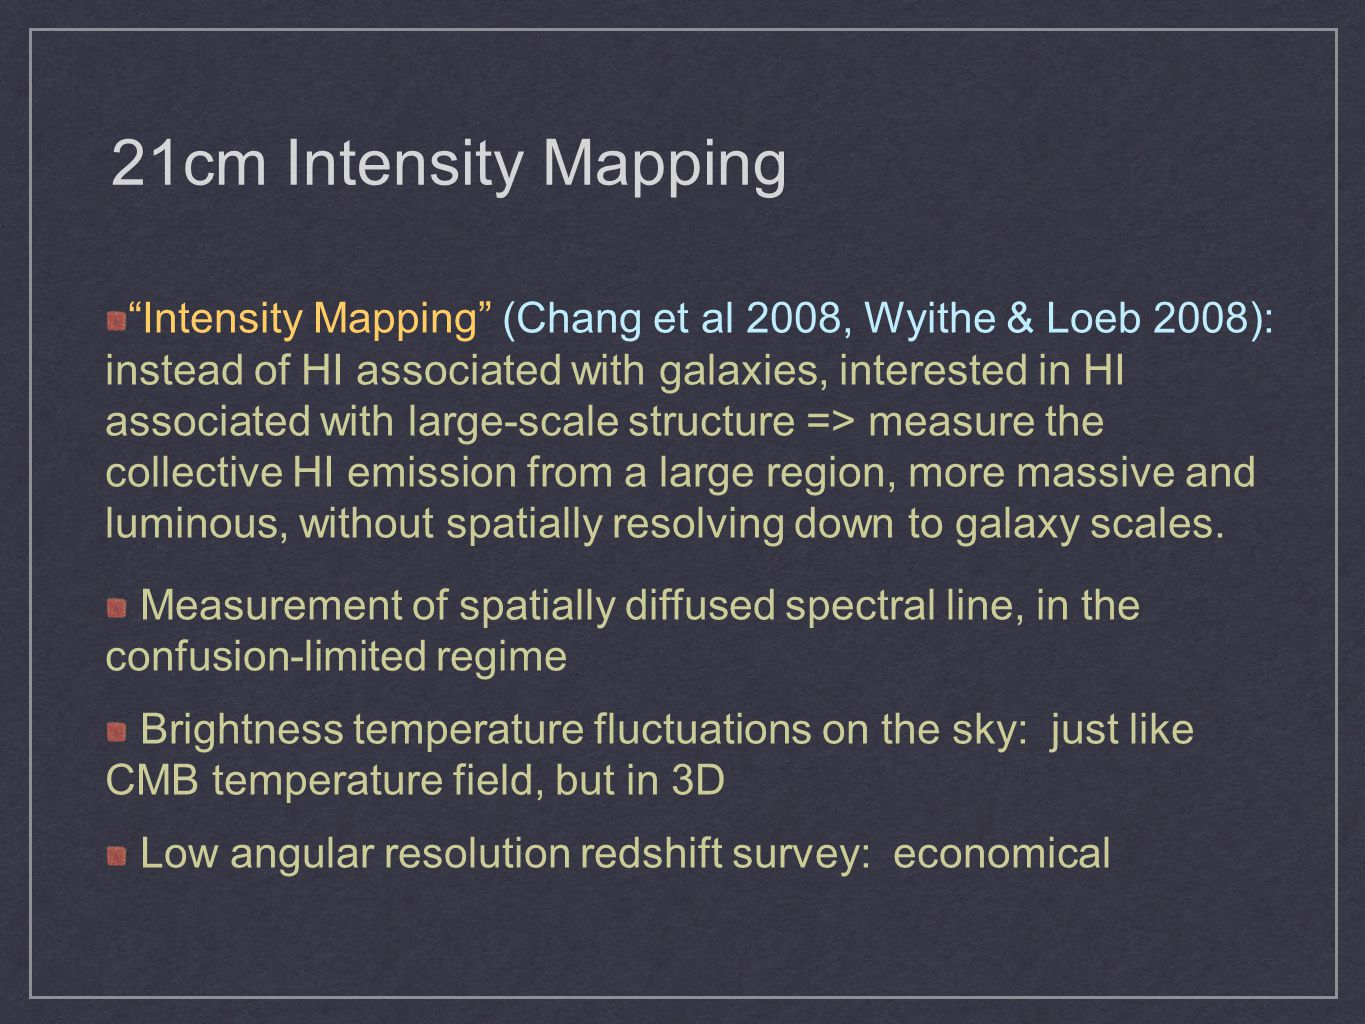 21cm Intensity Mapping